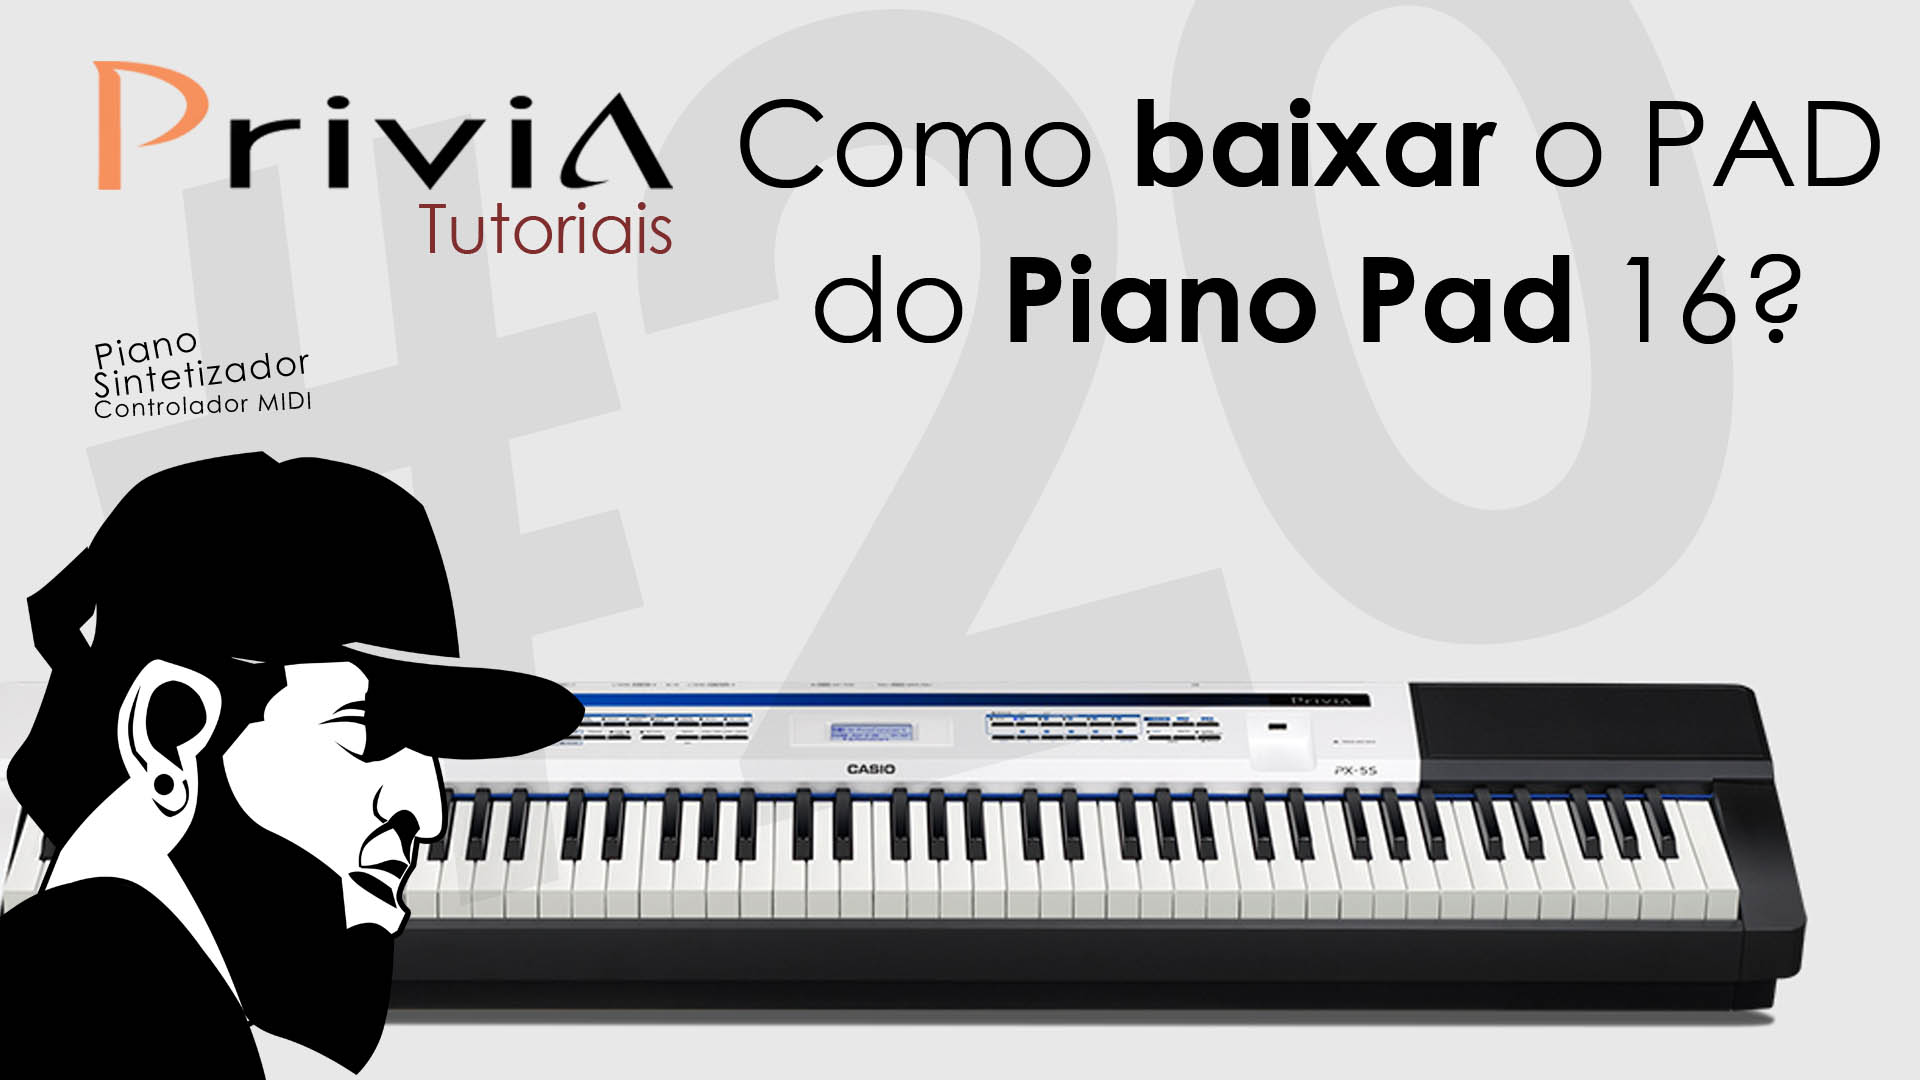 Como Baixar o Volume do Pad (Piano Pad 16) – Casio Data Editor – Privia PX-5S